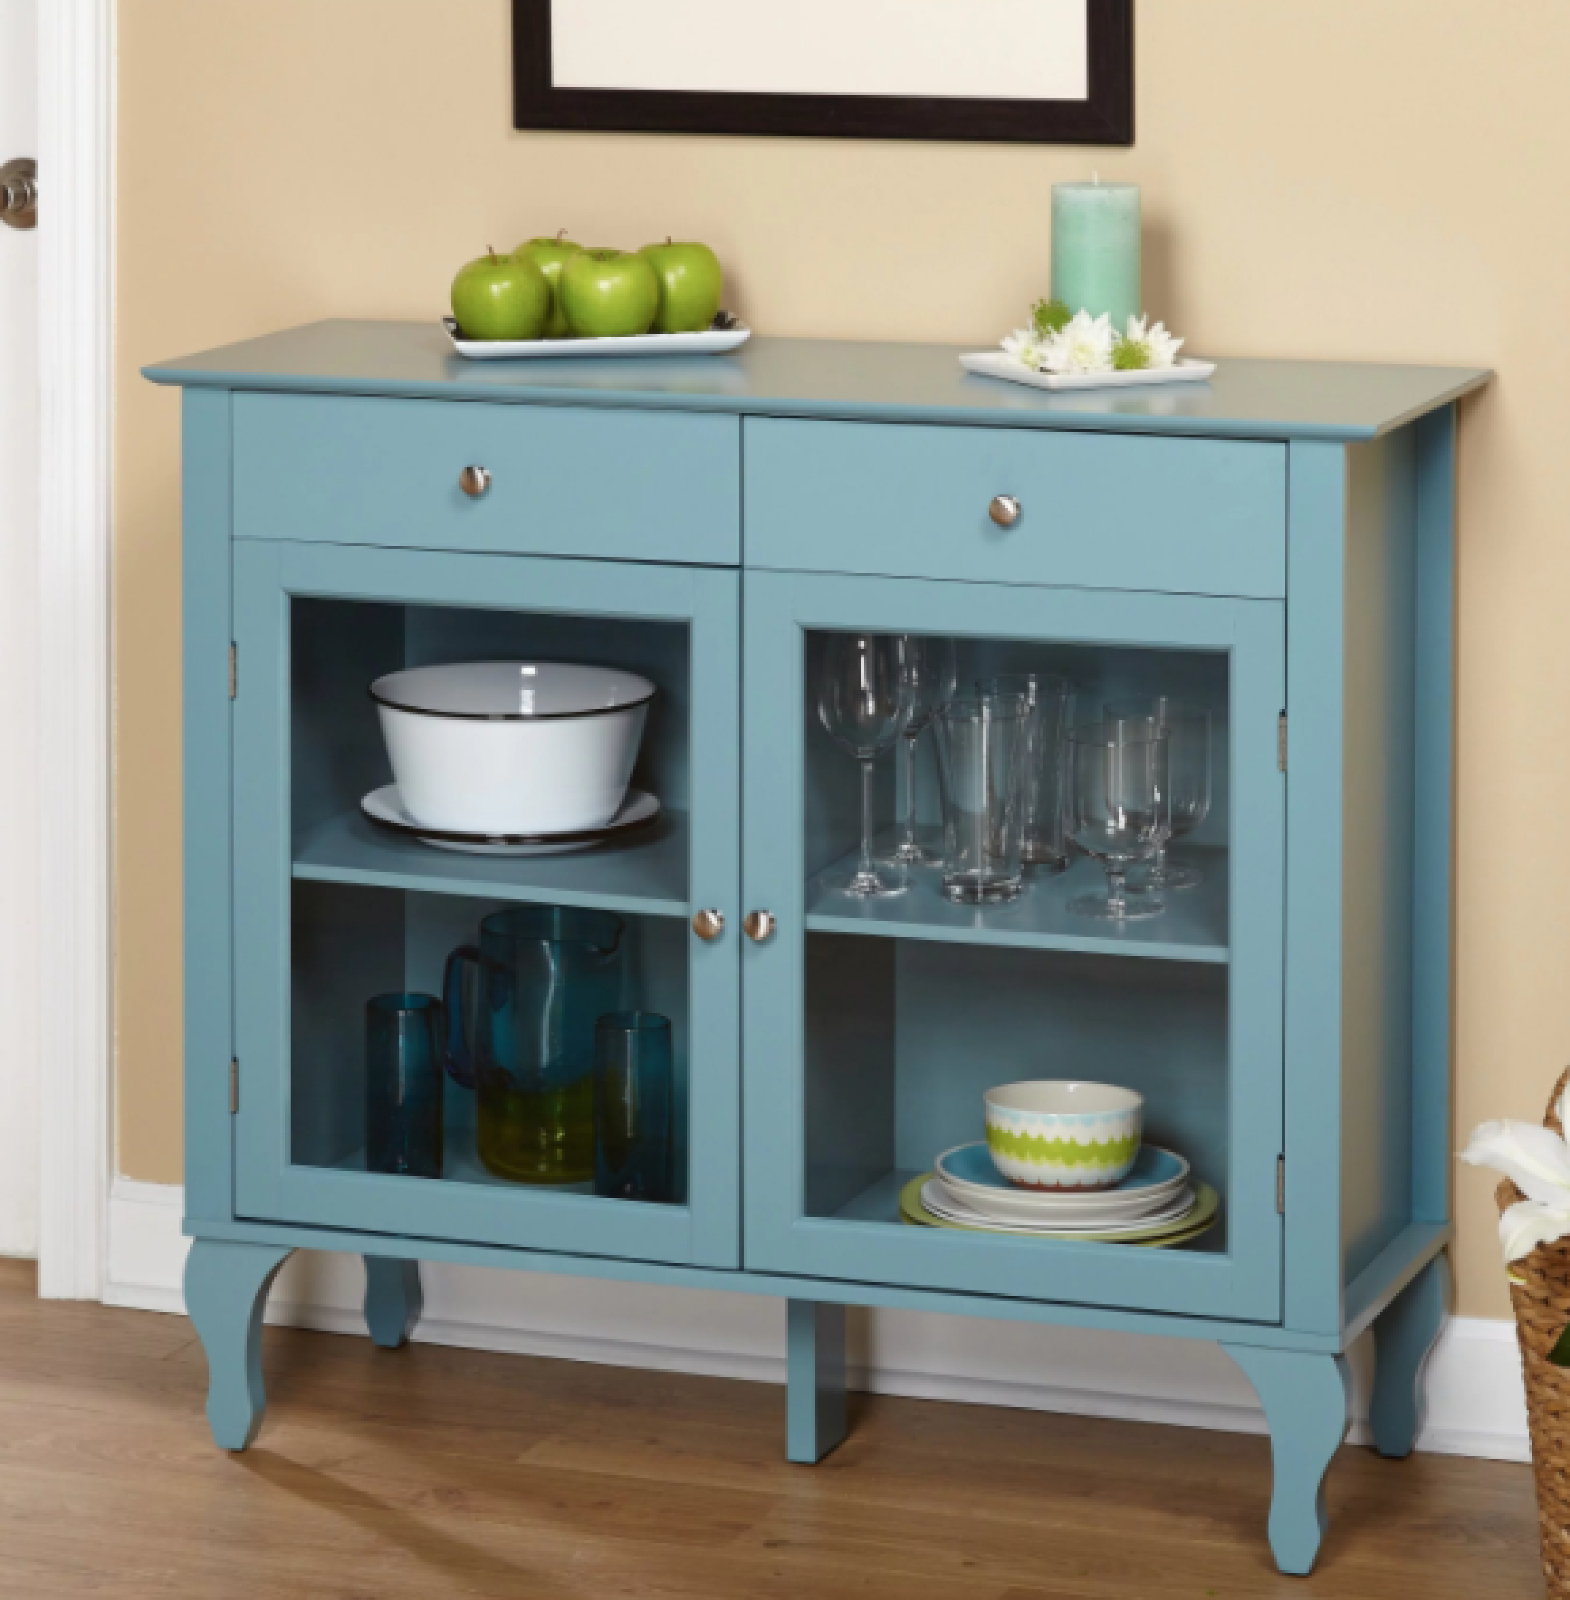 Sideboard Buffet Kitchen Cabinet Glass Door Shelve Drawer Teal Country Blue Chic Regarding Simple Living Layla Black Buffets (View 19 of 30)